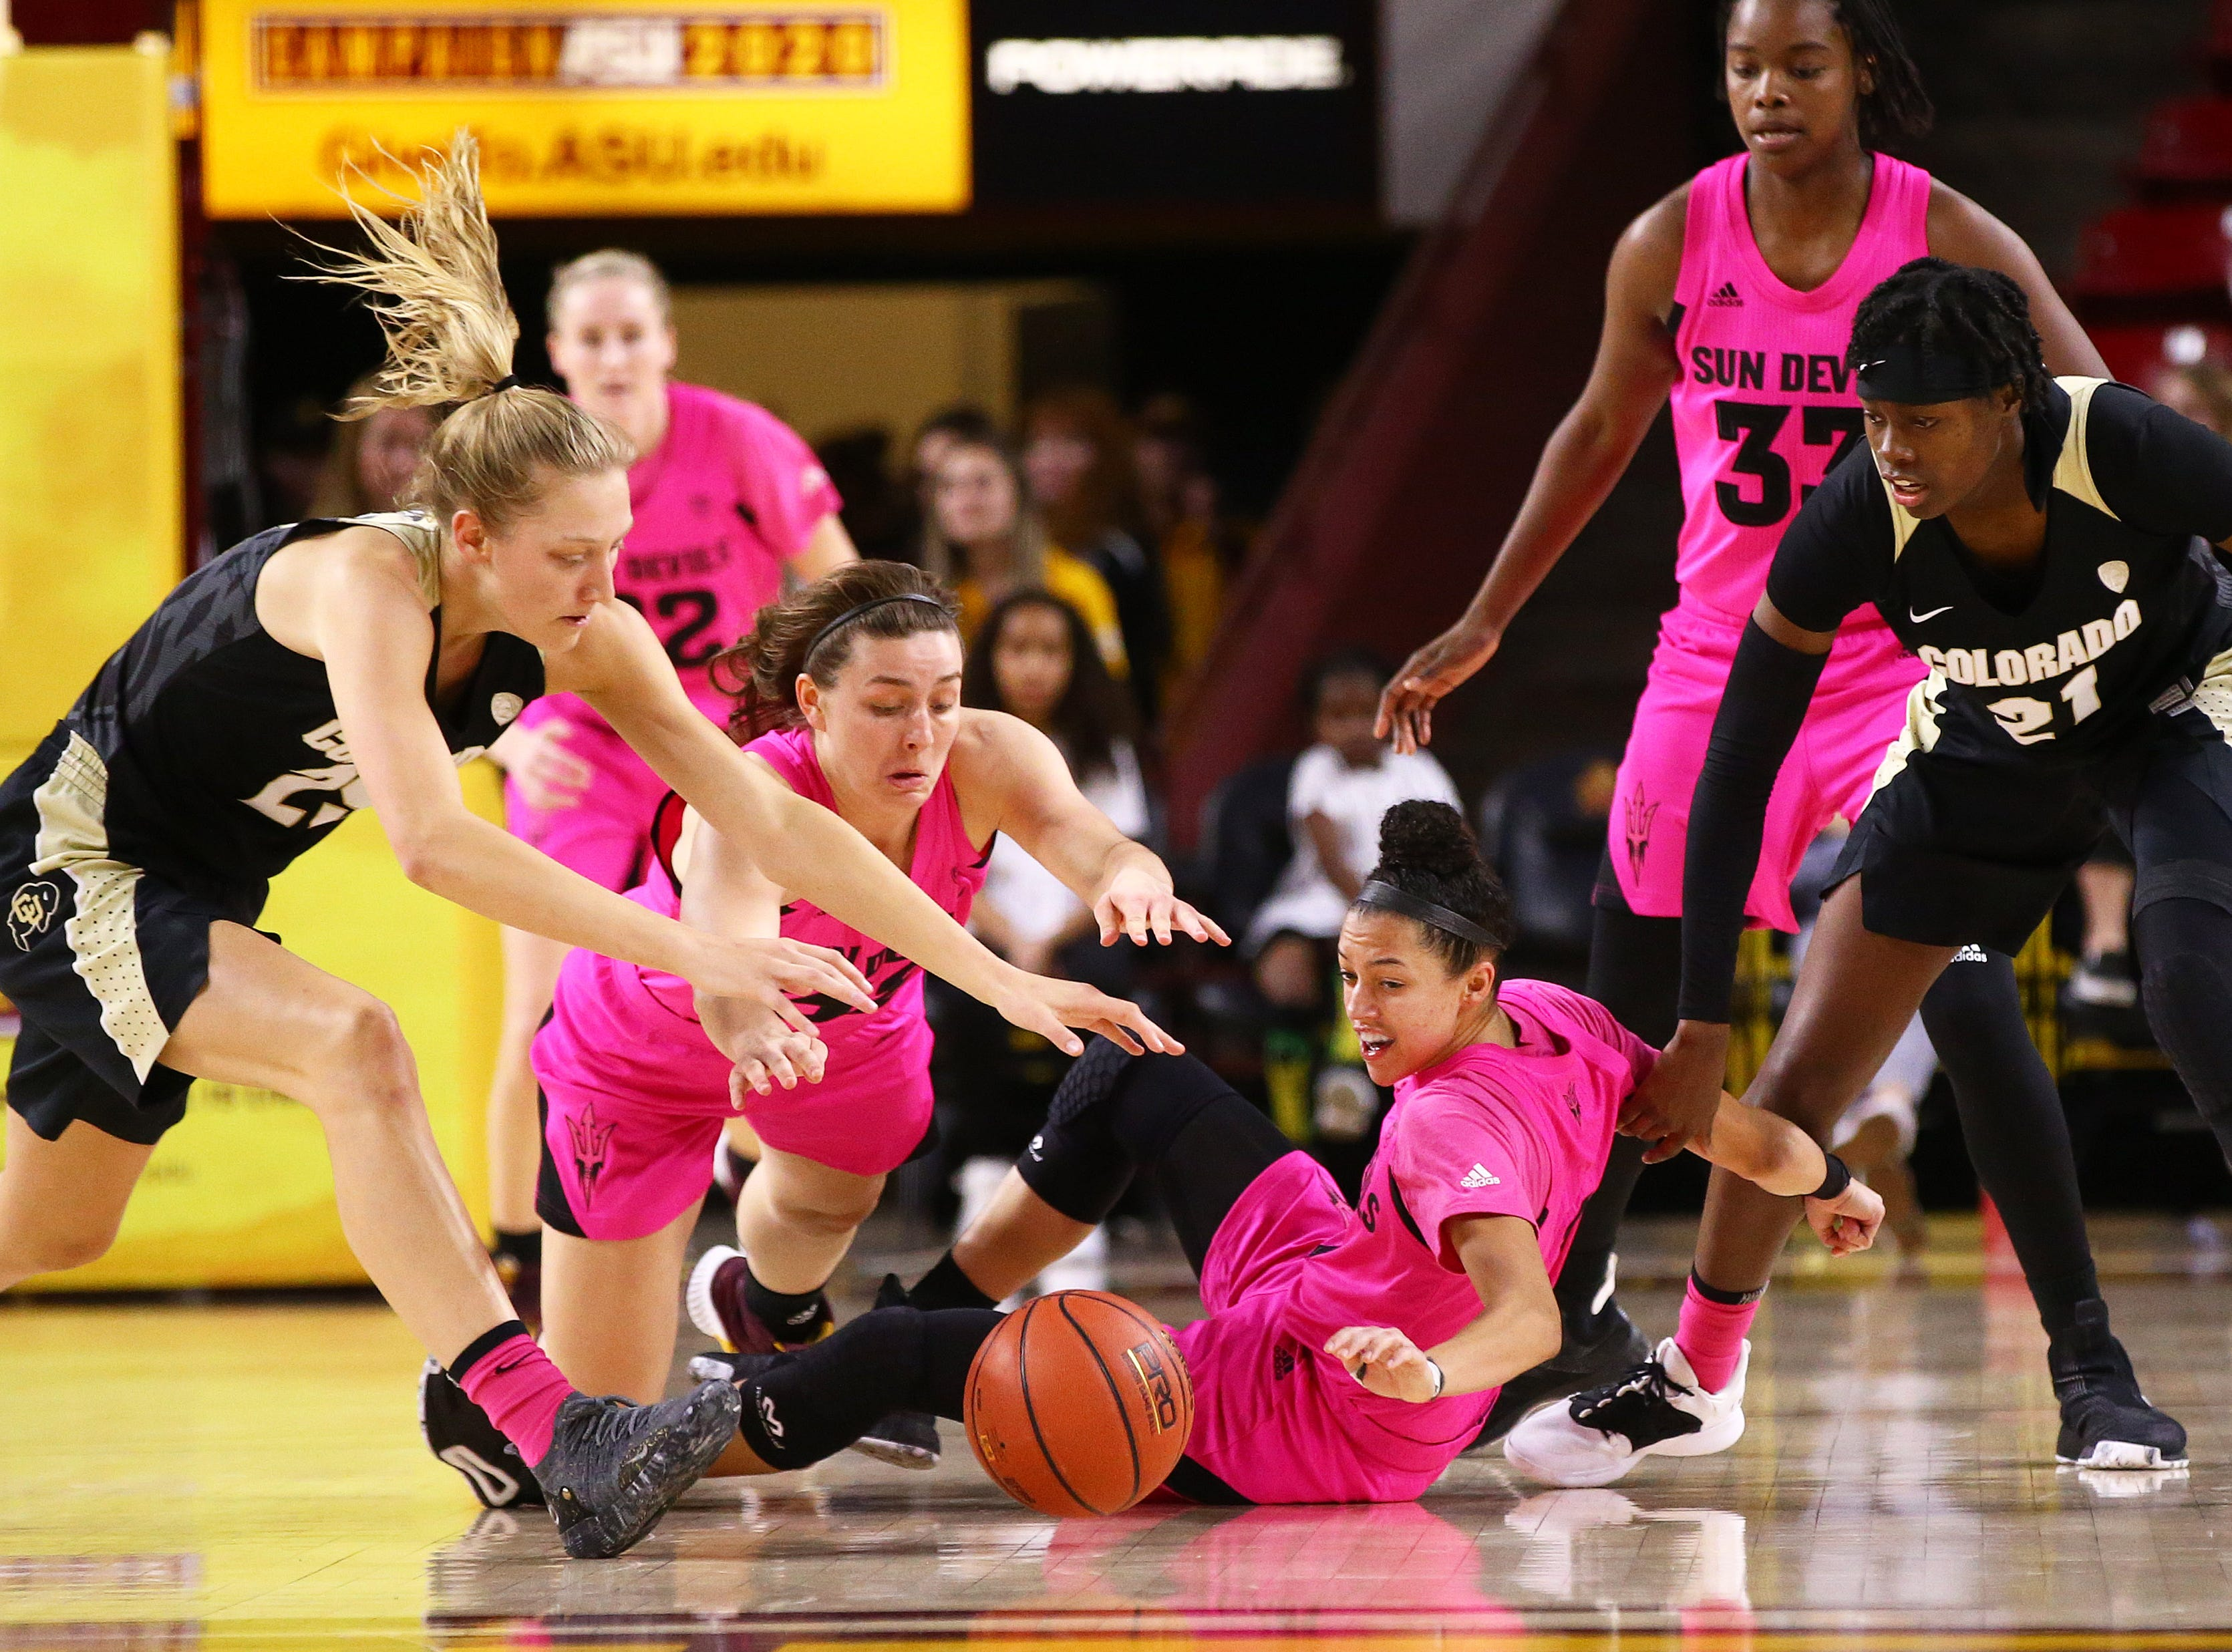 Arizona State Sun Devils against the Colorado Buffaloes in the second half on Feb. 15 at Wells Fargo Arena in Tempe, Ariz.